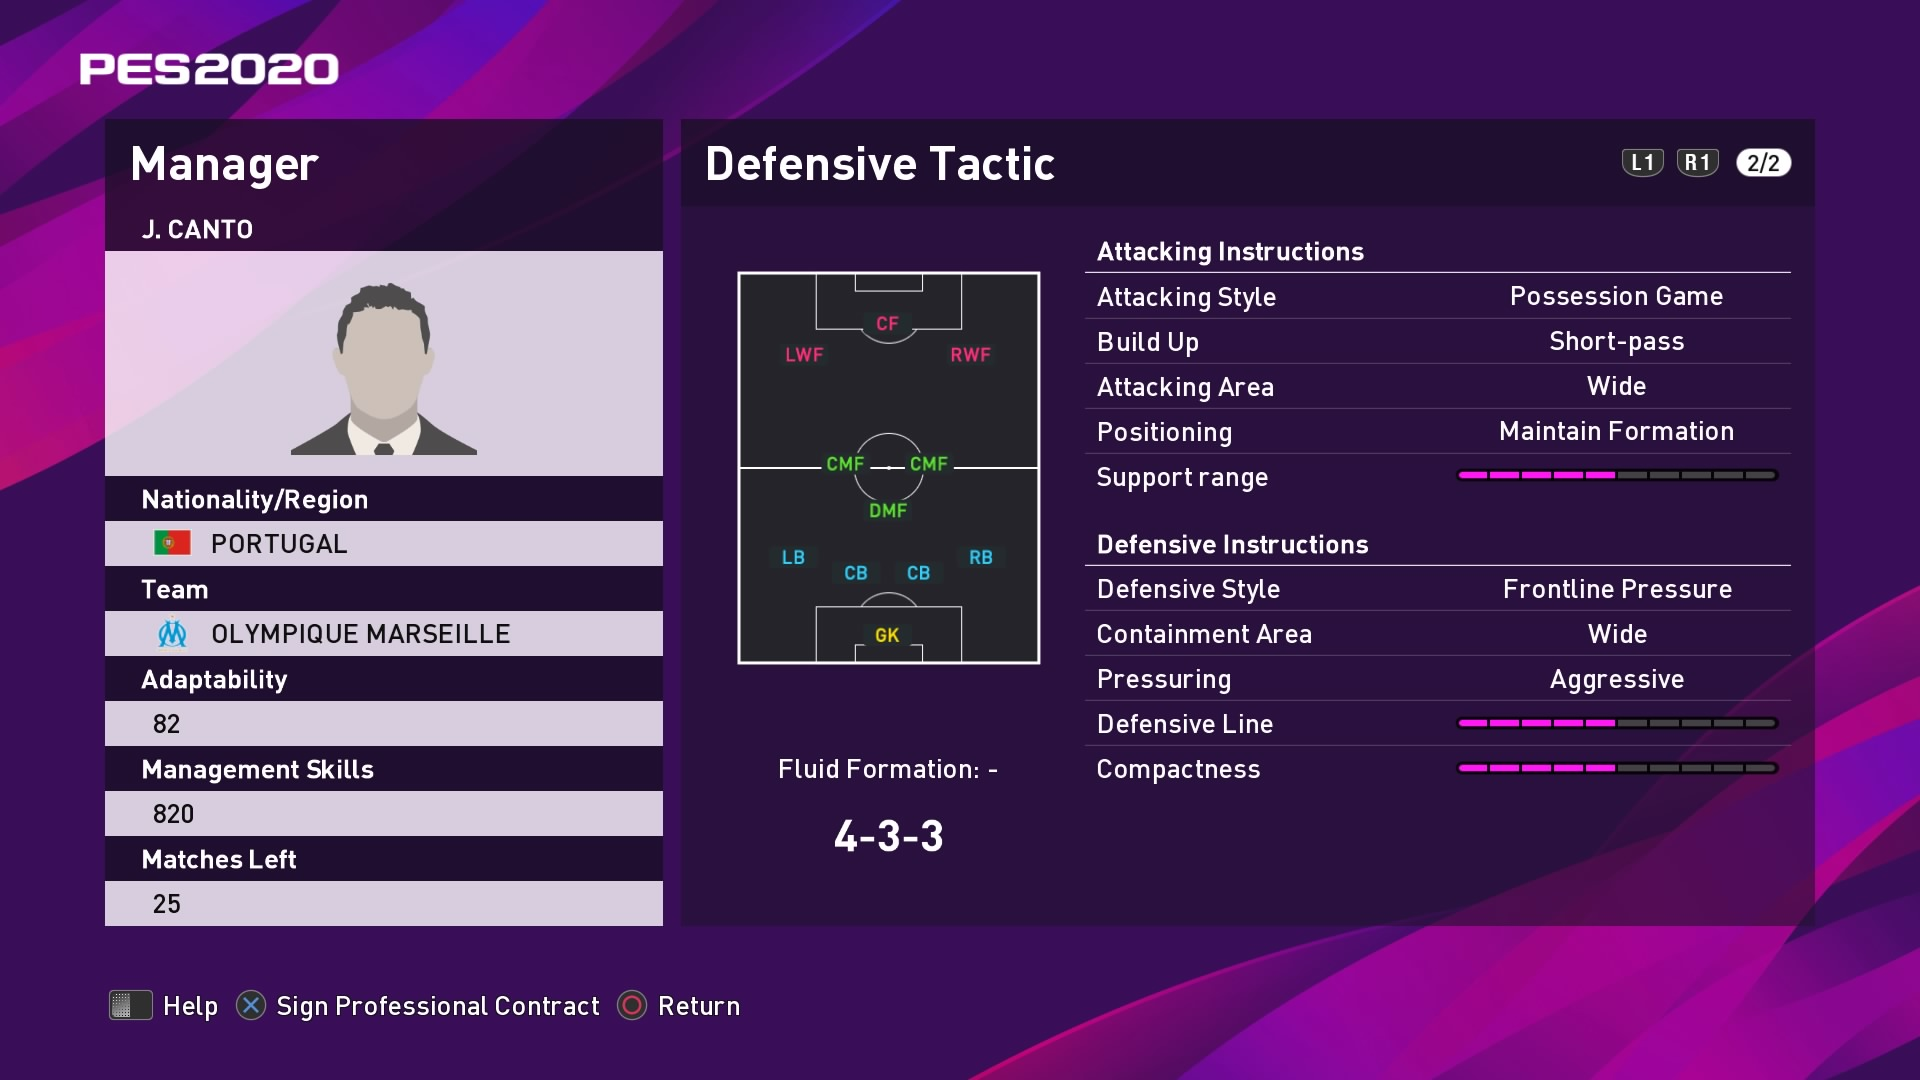 J. Canto (André Villas-Boas) Defensive Tactic in PES 2020 myClub